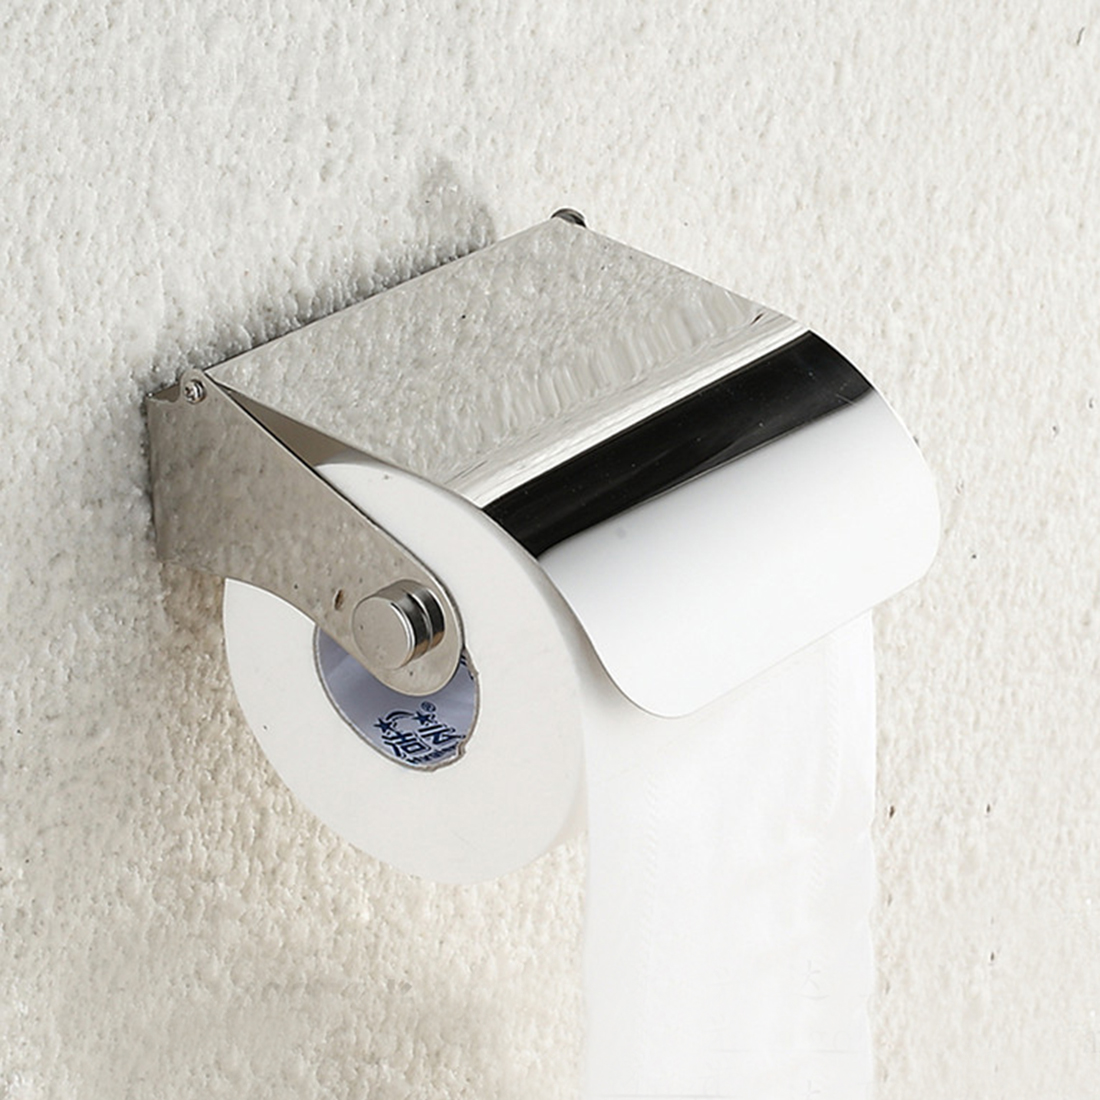 Bathroom accessories stainless steel toilet paper roll Creative toilet paper holder